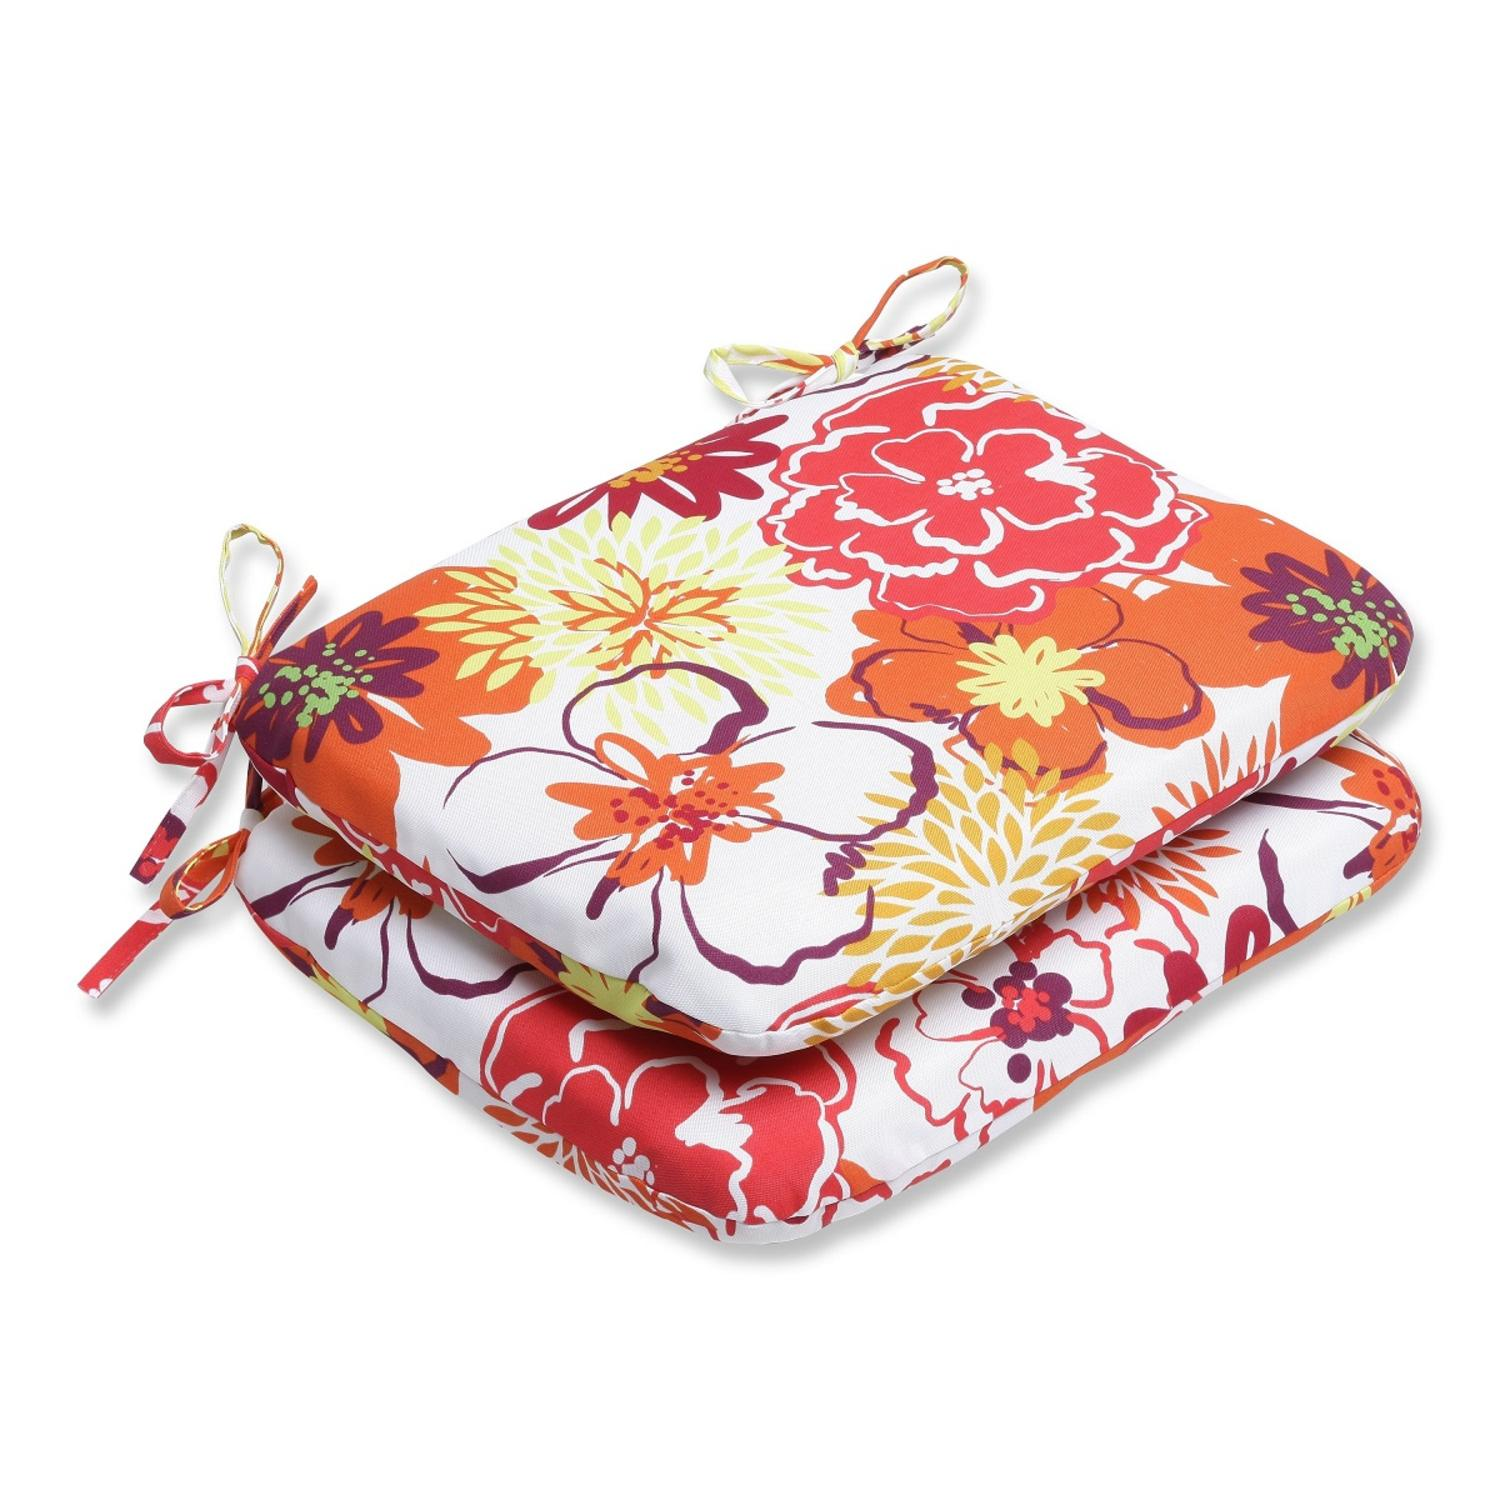 Set of 2 Floreale Spruzzata Red and Yellow Floral Outdoor Patio Rounded Chair Cushions 18.5""